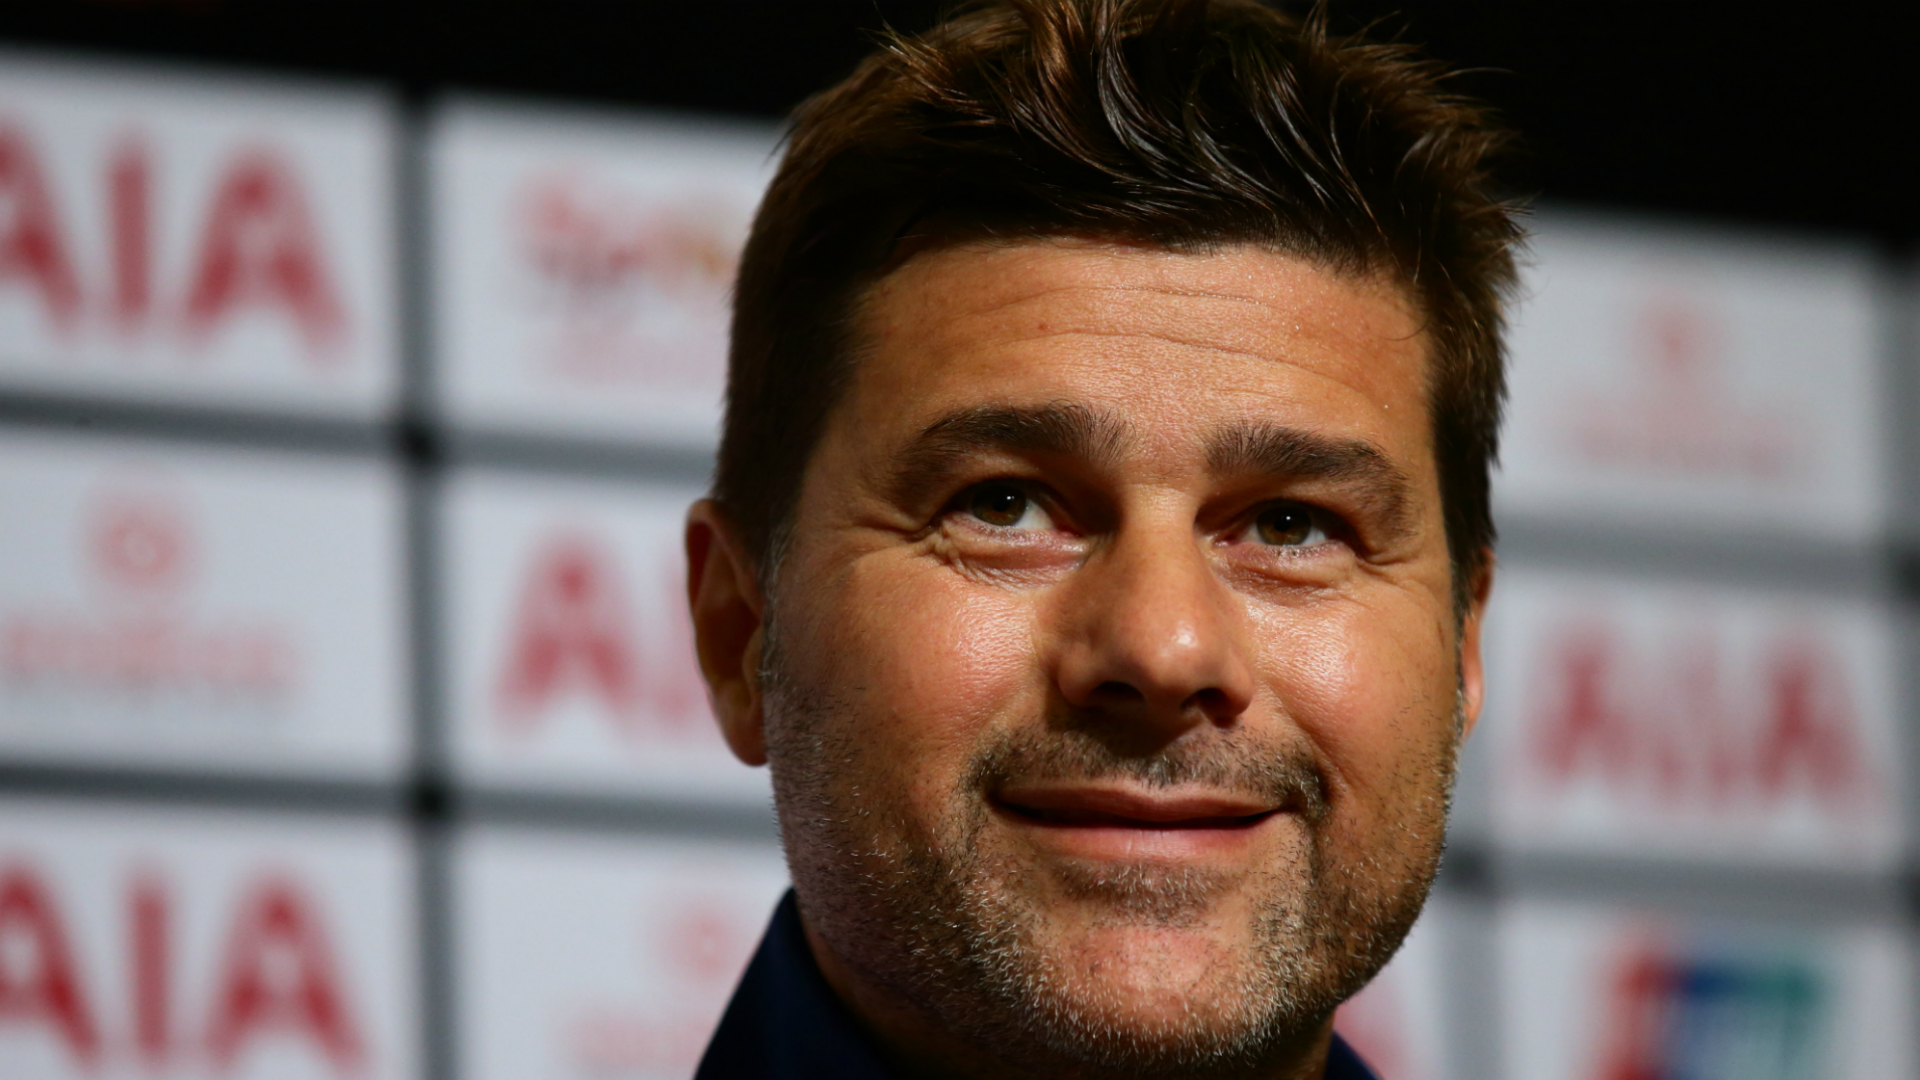 Pochettino will bring 'clear playing style' to Champions League hopefuls PSG, says Sorin